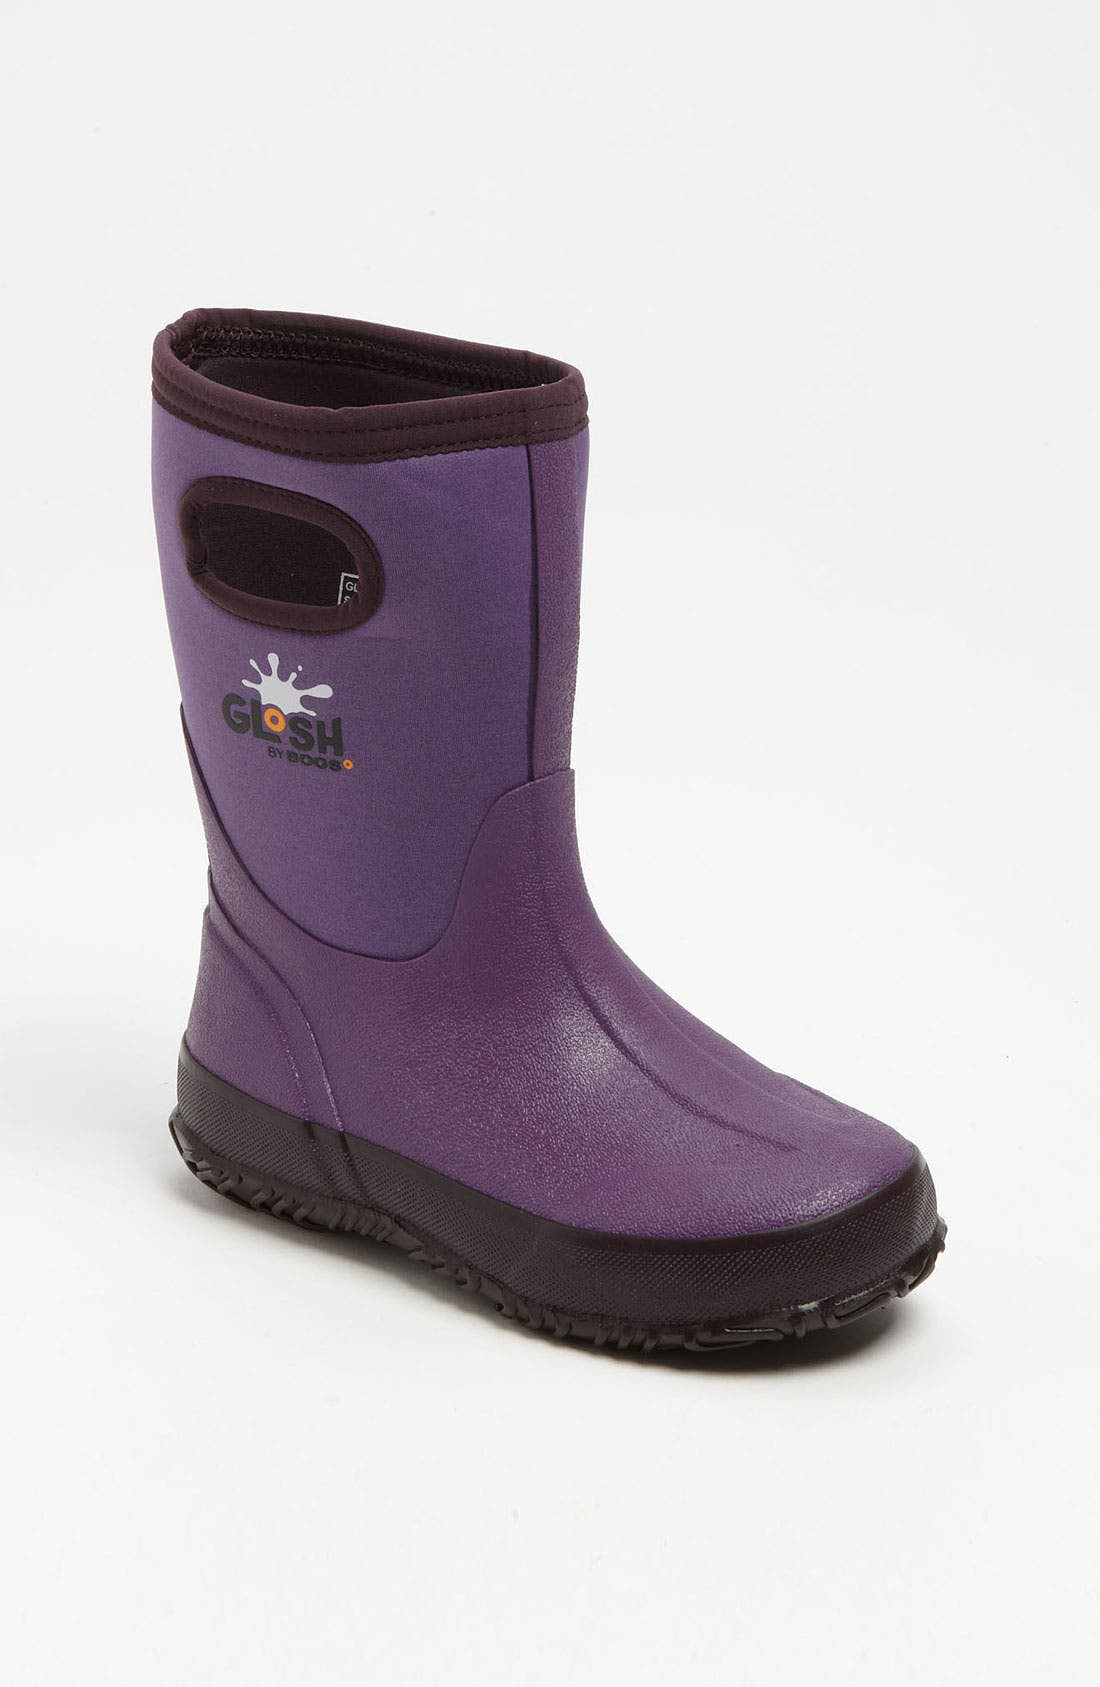 Alternate Image 1 Selected - Bogs 'Glosh' Rain Boot (Toddler, Little Kid & Big Kid)